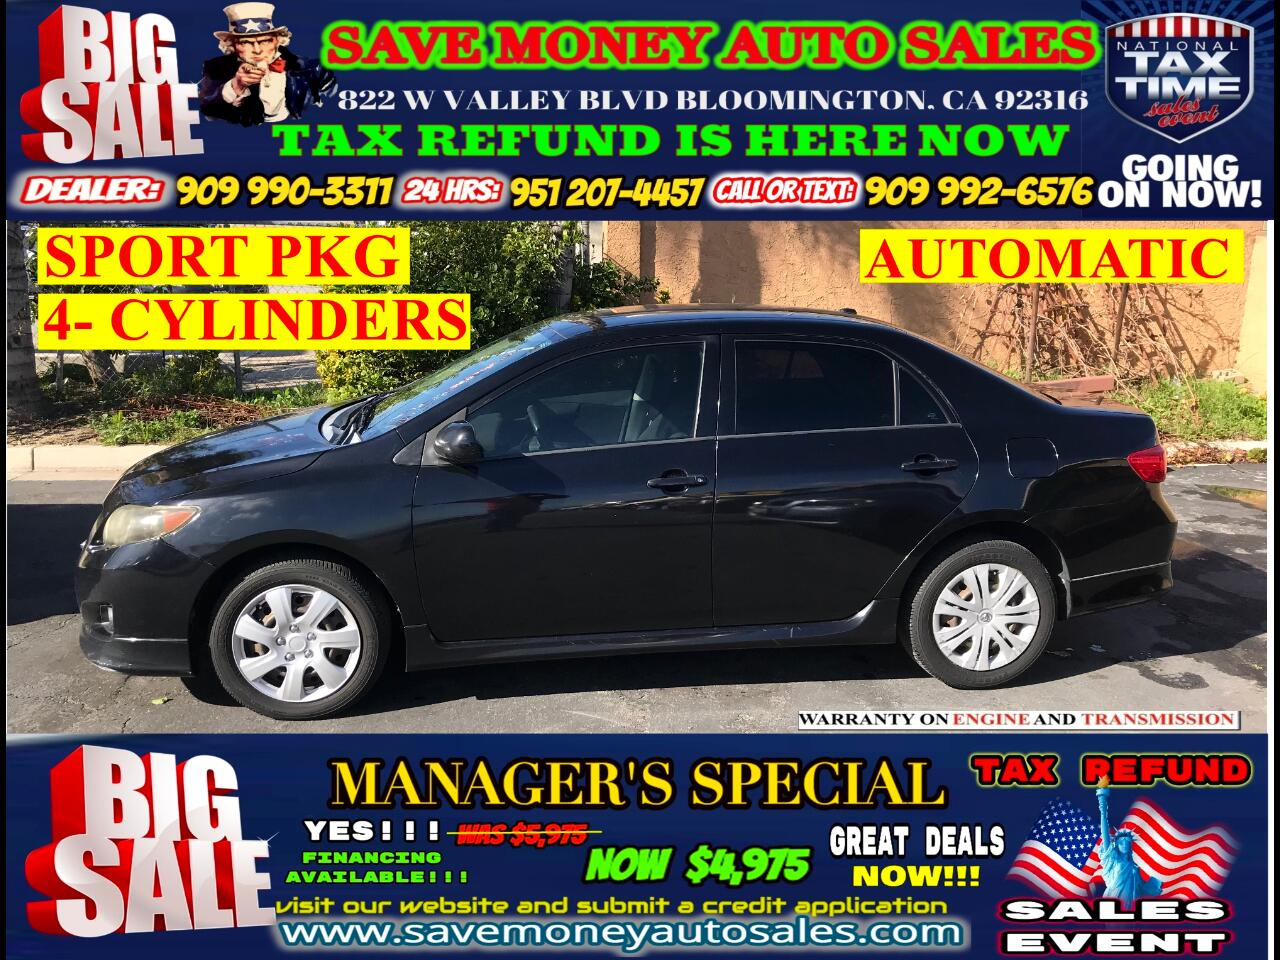 2009 Toyota Corolla S EDITION>>ONLY 4 CYLINDERS+GAS SAVER+SPORTY